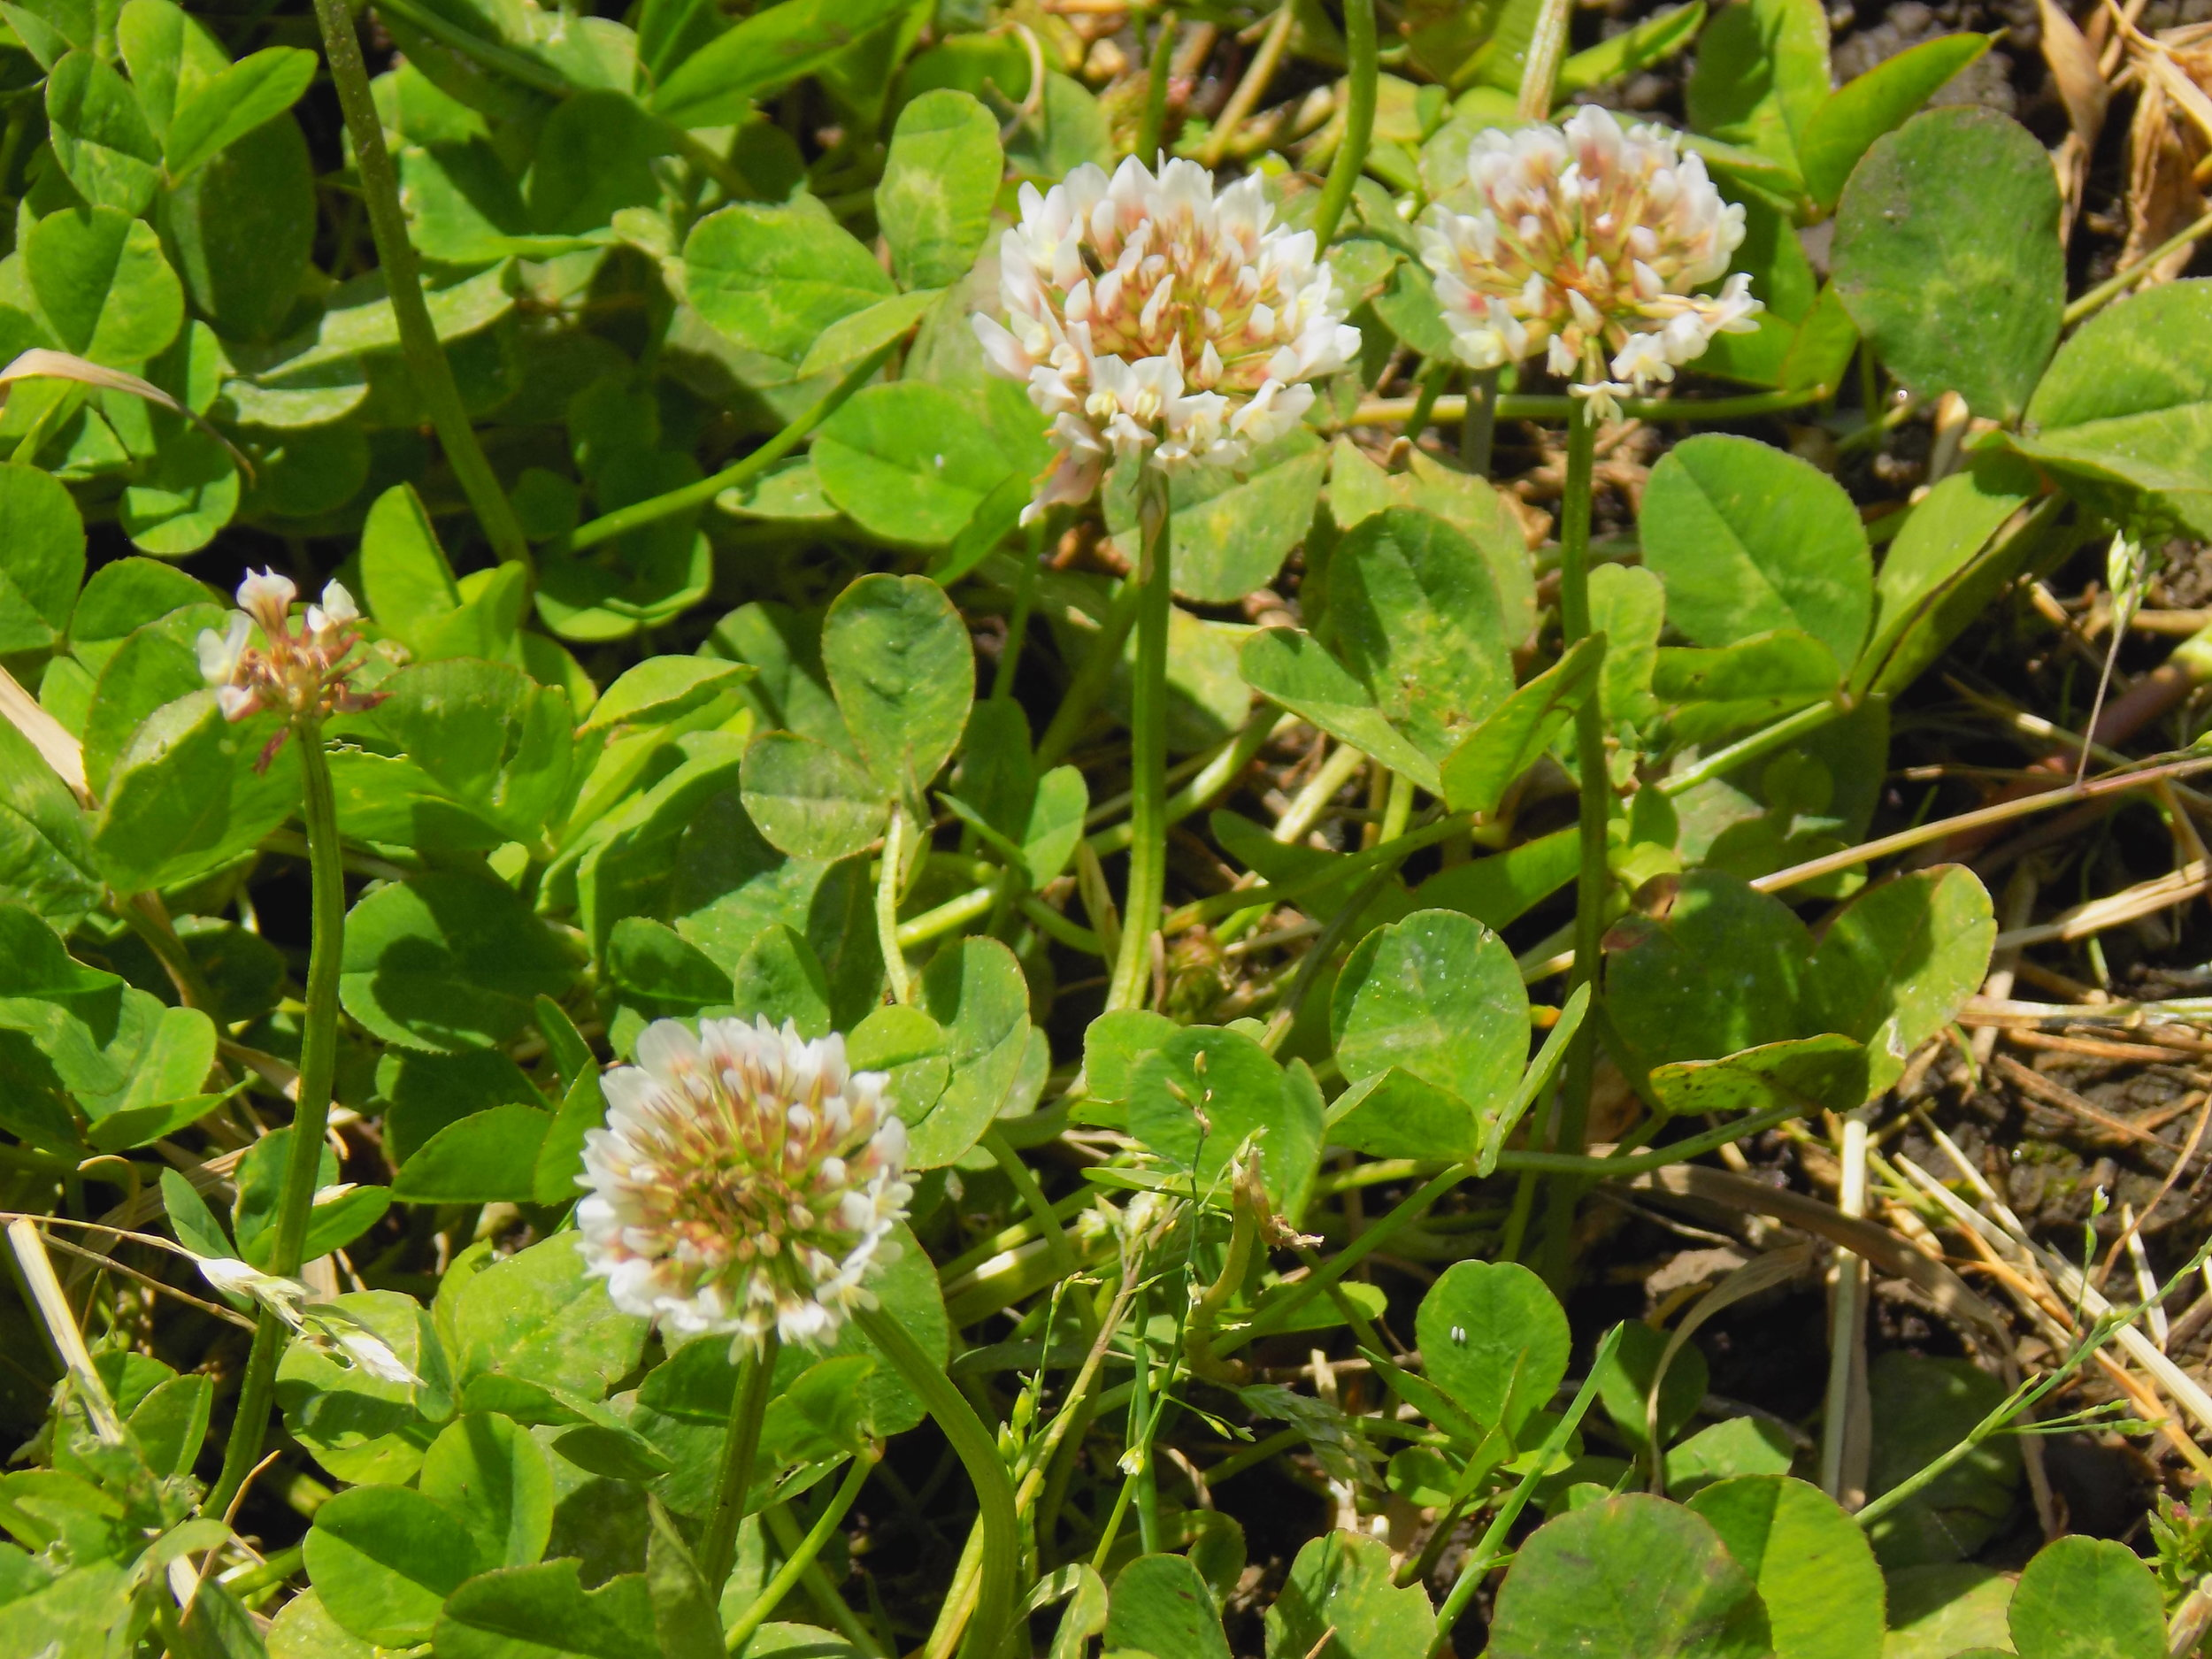 Dutch clover - Nitrogen producers.Prevent soil from erosion with dense, shallow roots.Stand up well to heavy traffic.